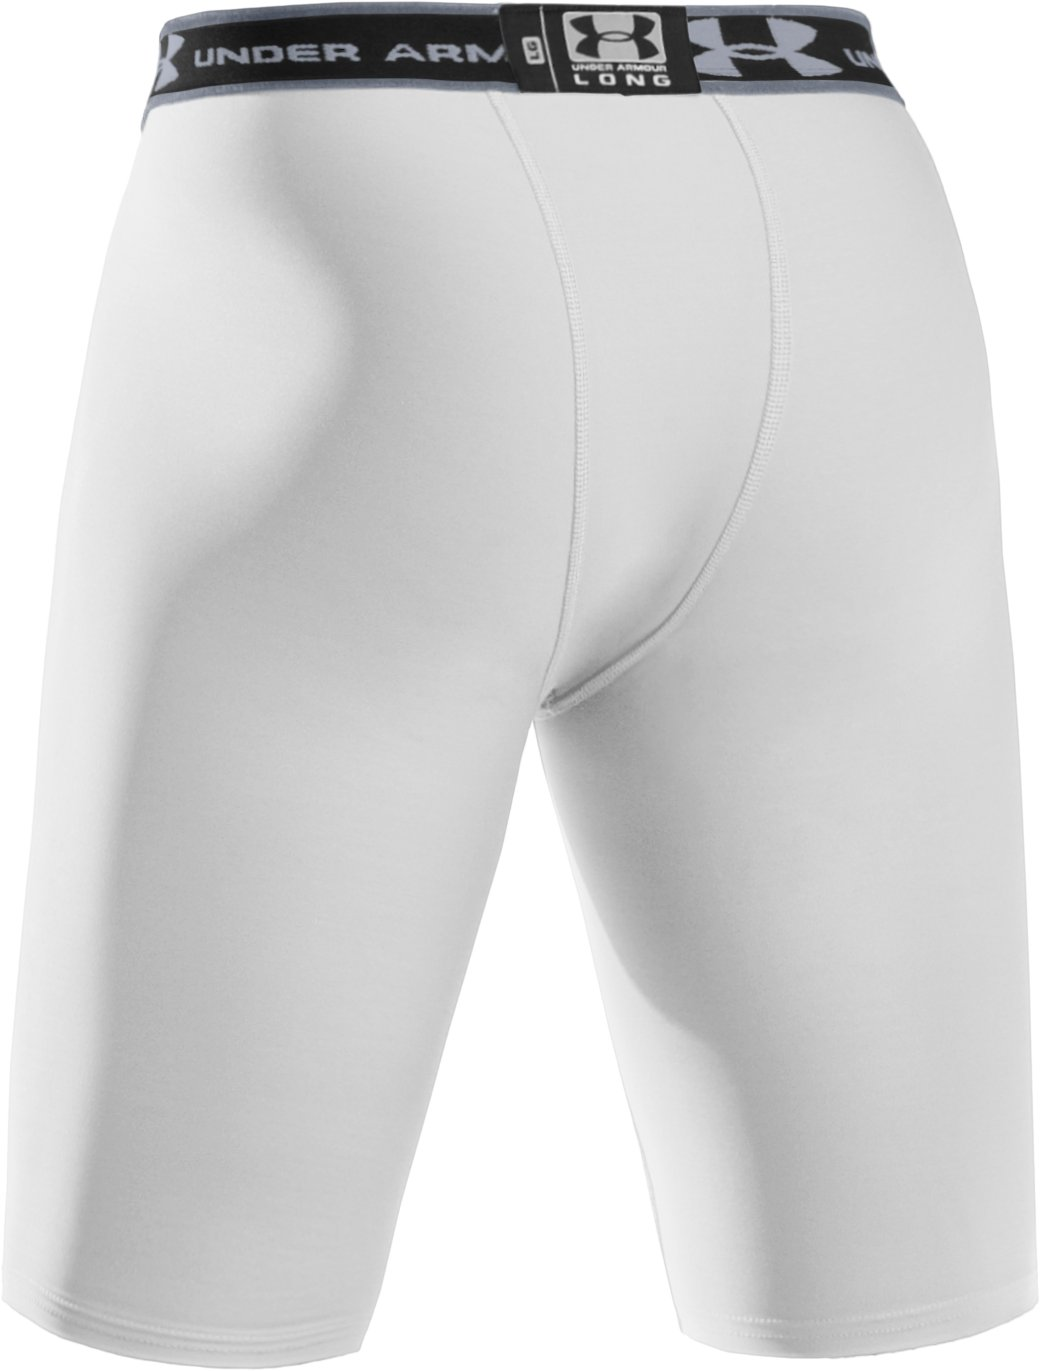 "Men's HeatGear® Compression 9"" Shorts, White"